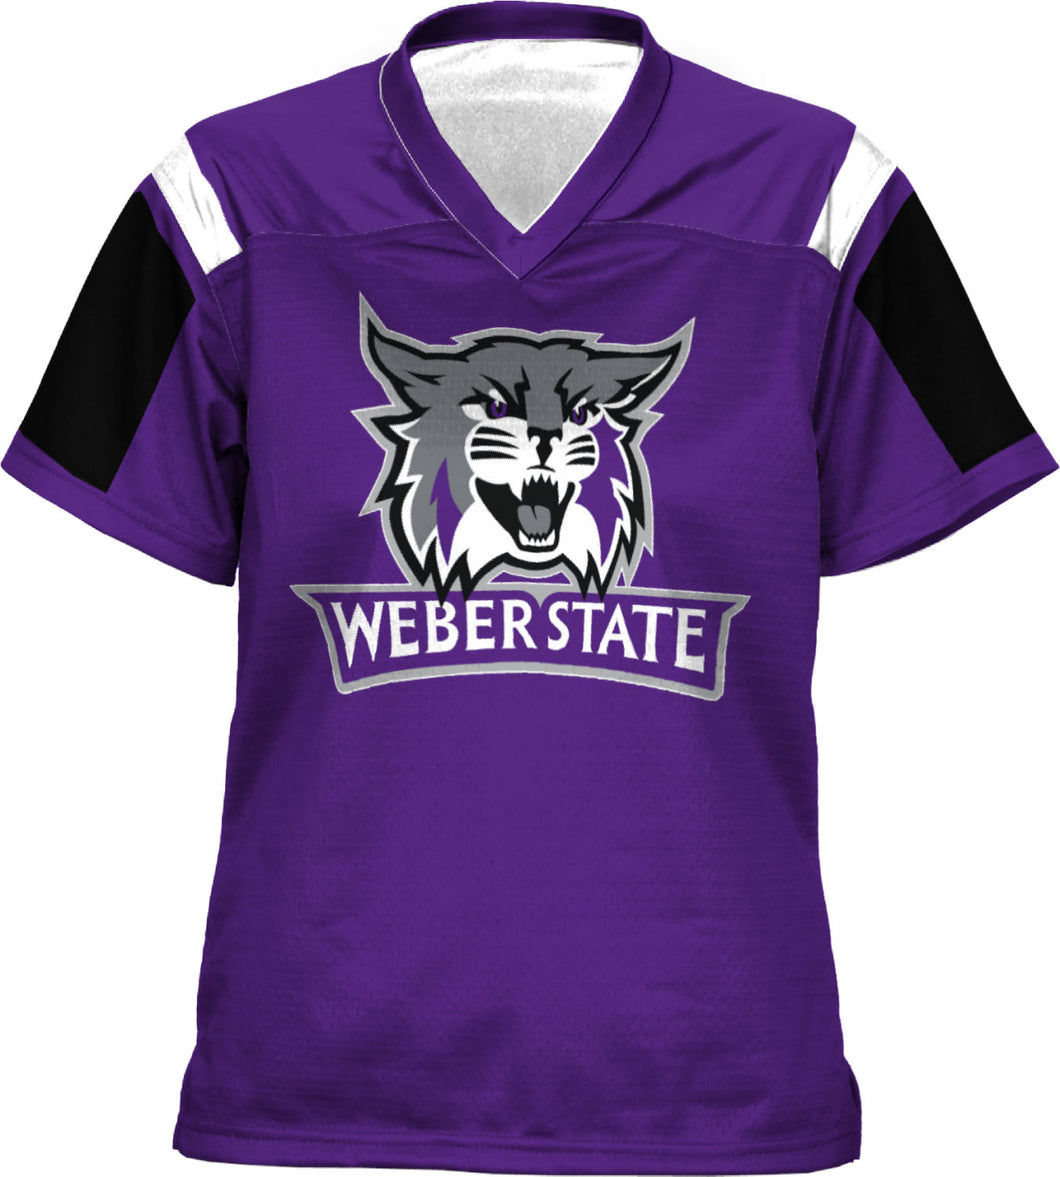 Weber State University: Women's Football Fan Jersey - Thunderstorm